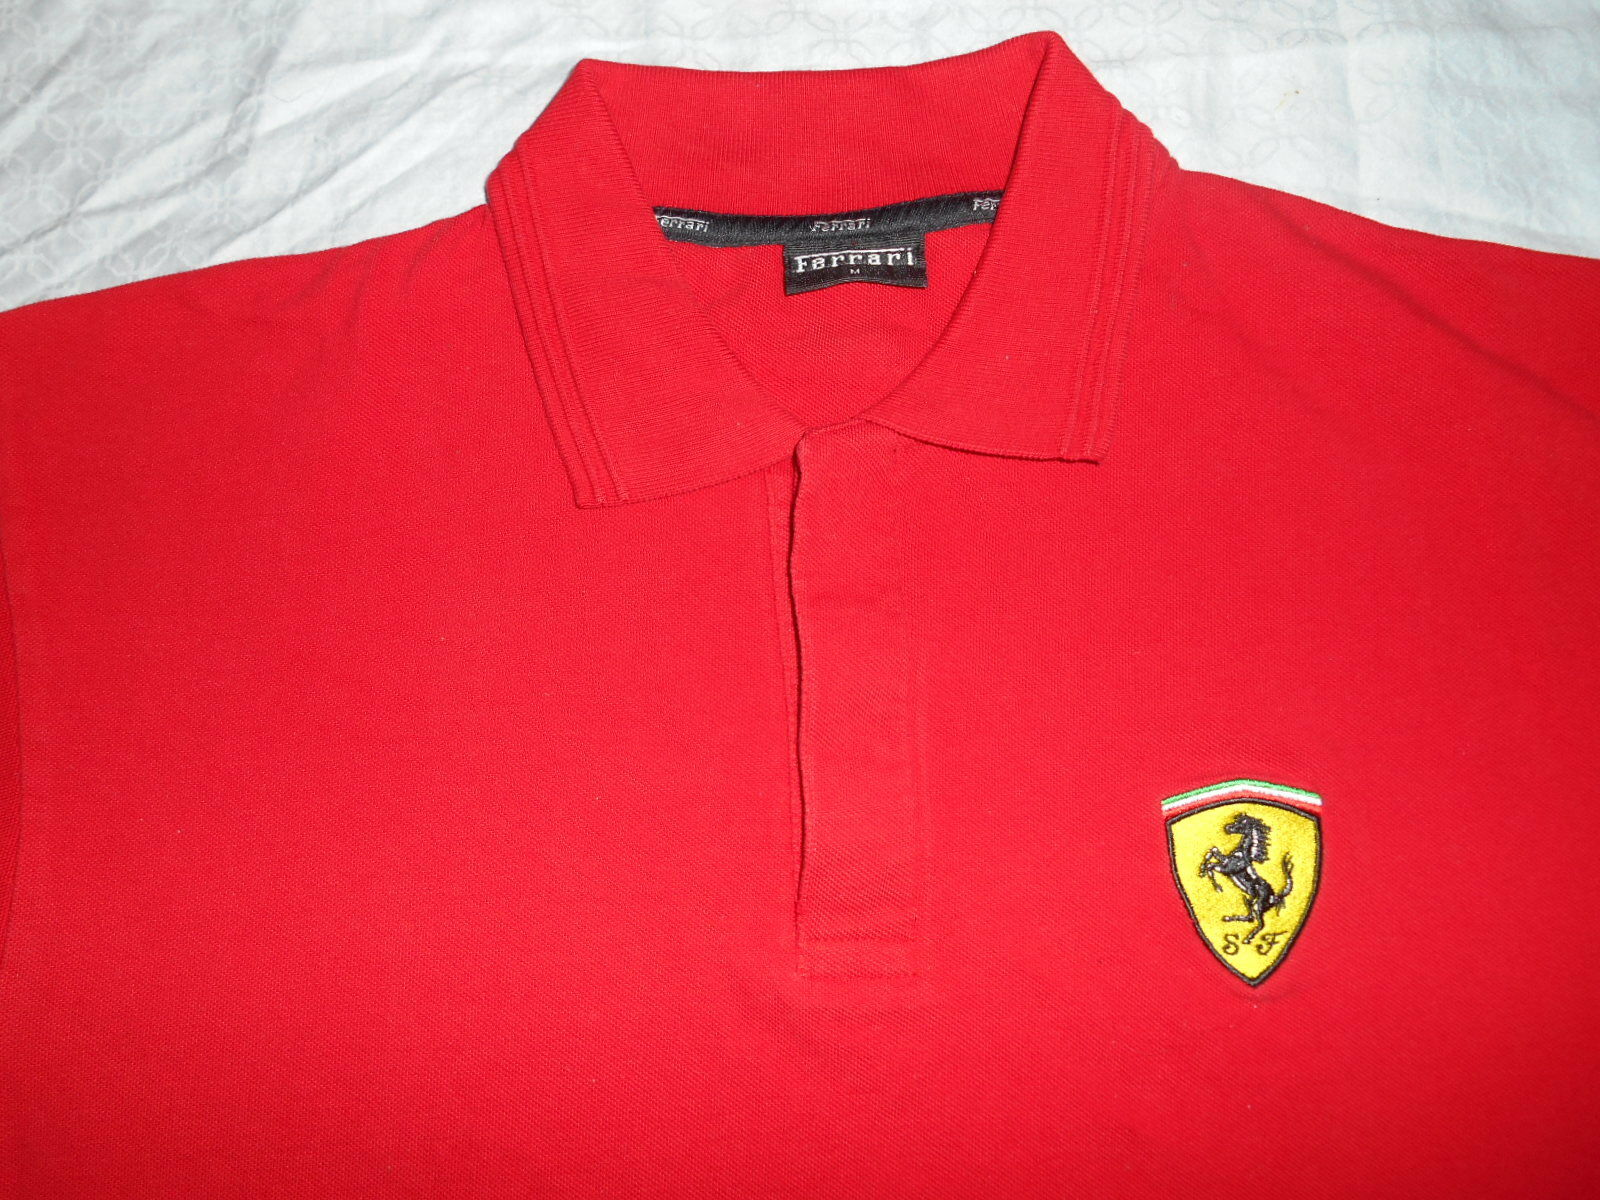 FERRARI SCUDERIA EMBROIDERED RED POLO SHIRT SIZE MEDIUM FROM ITALY.